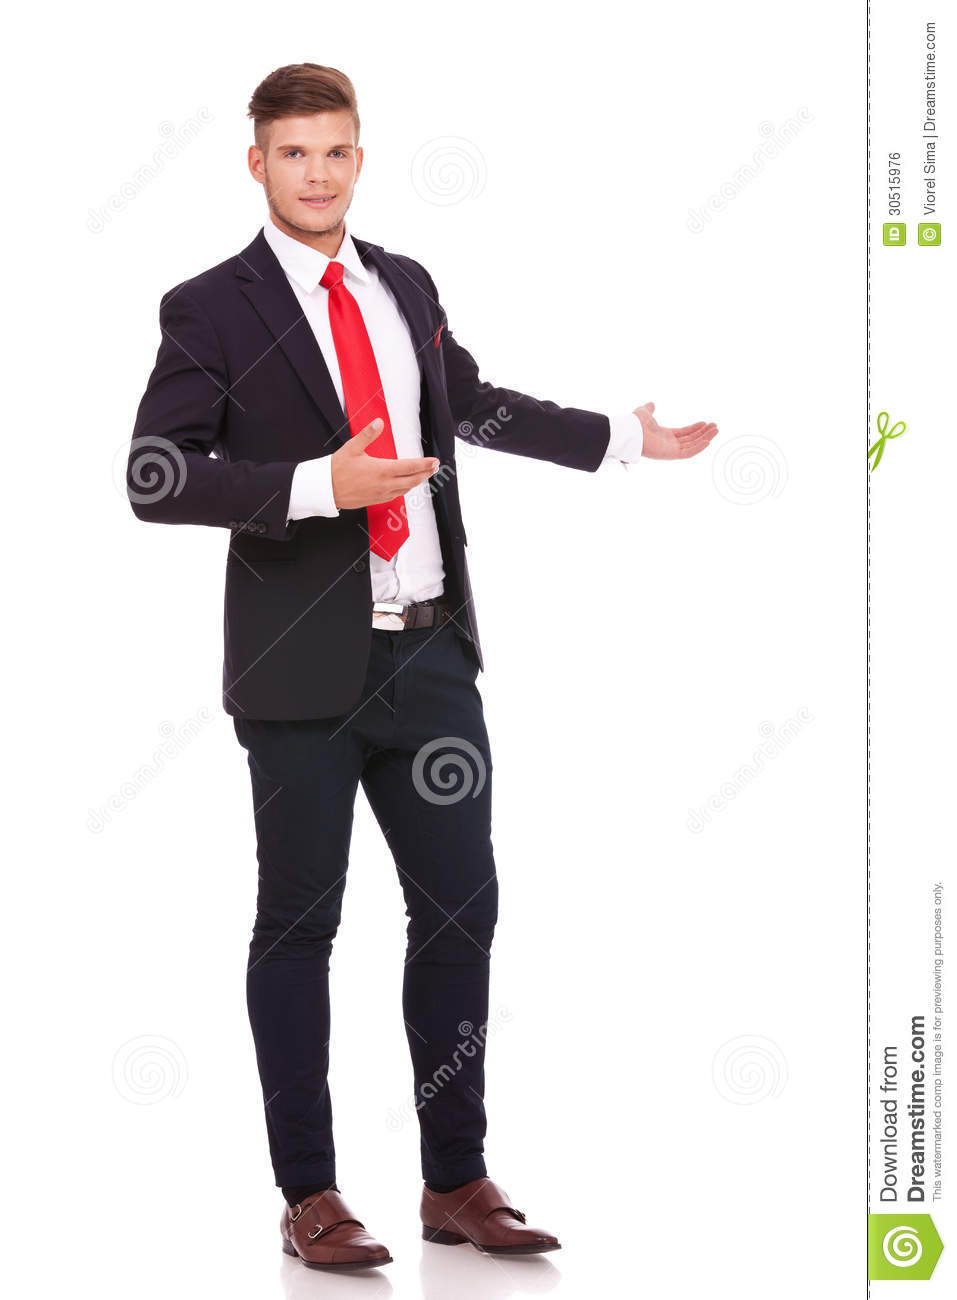 Business Man Inviting You In The Back Stock Photo Image Of Latin